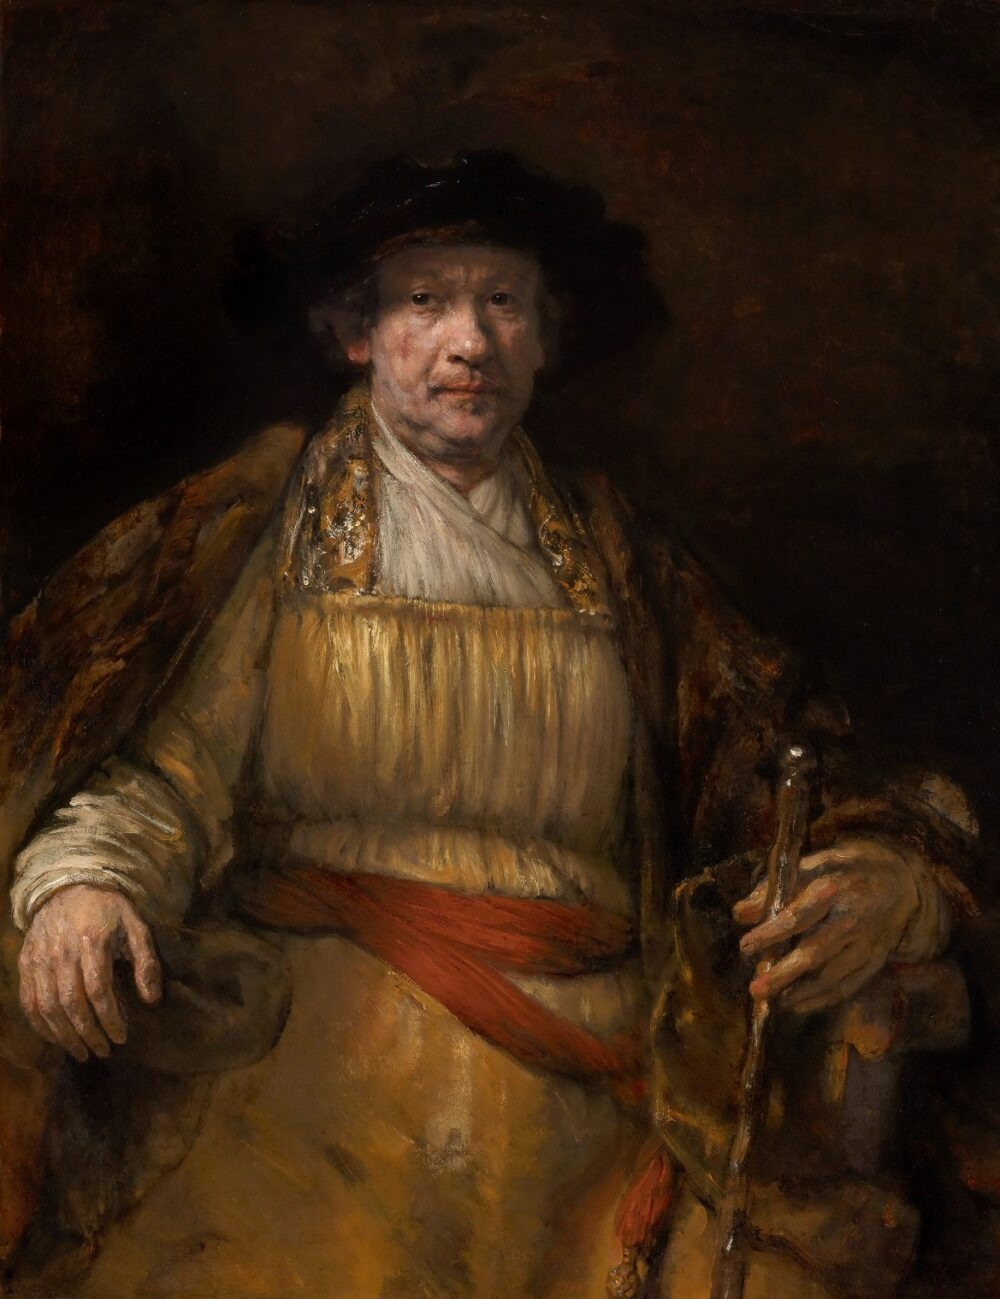 4. Rembrandt Harmensz van Rijn (1606-1669), Self-Portrait, 1658 The Frick Collection, New York Henry Clay Frick Bequest (1906.1.97) © The Frick Collection